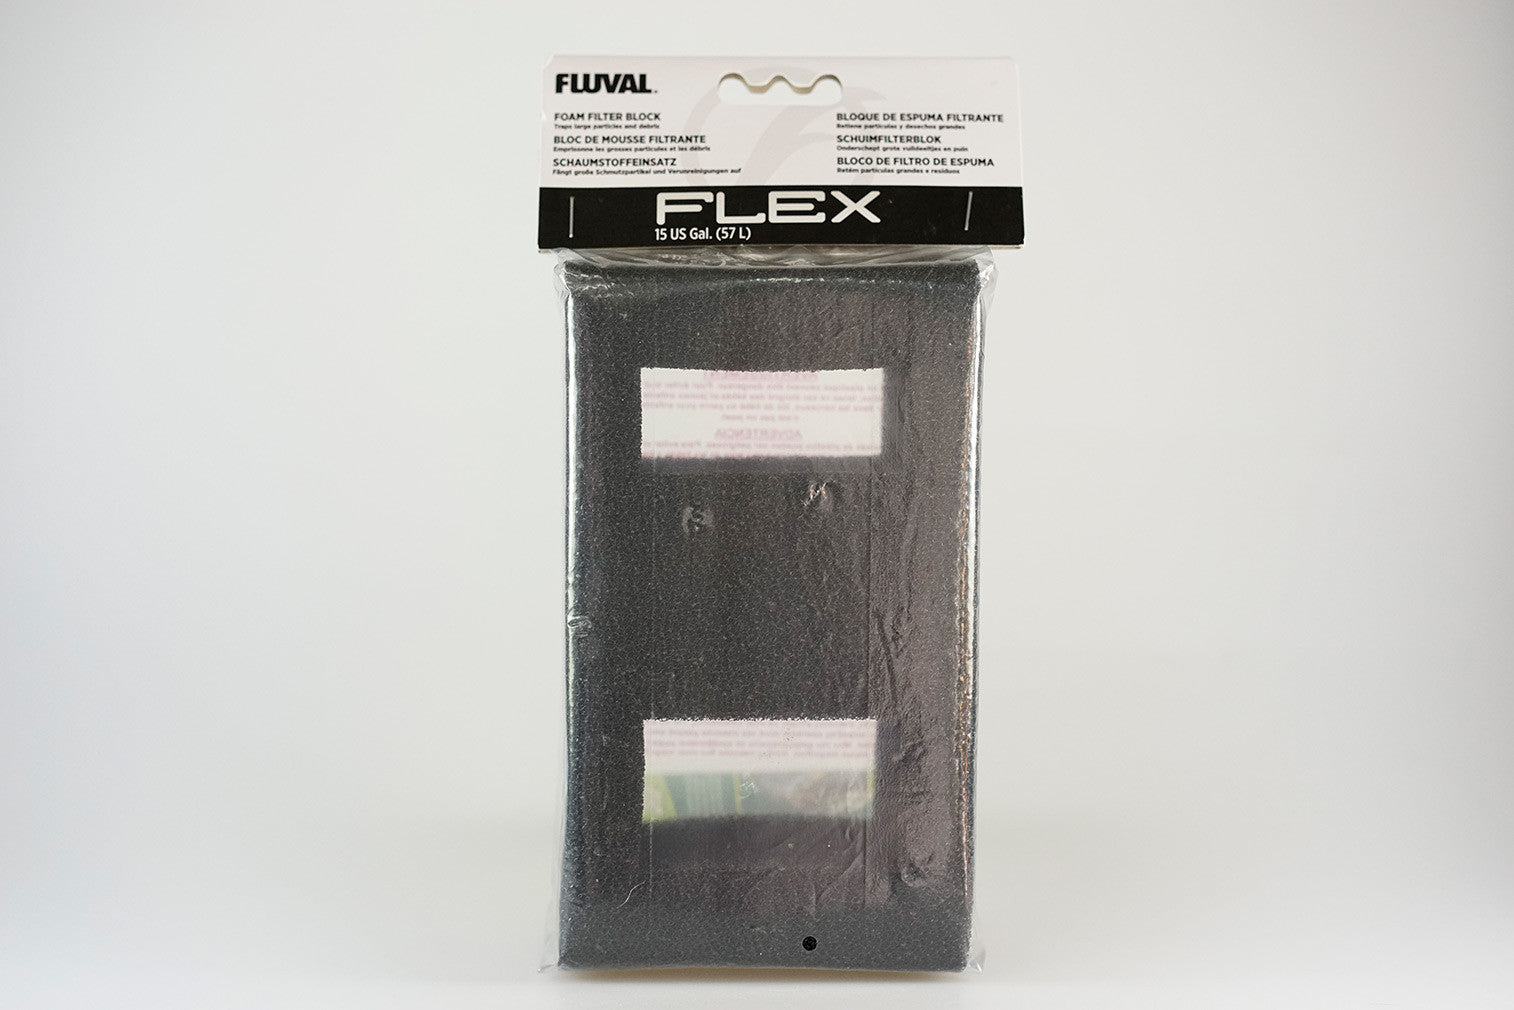 Fluval Foam Filter Block for Fluval Flex Aquarium 57L